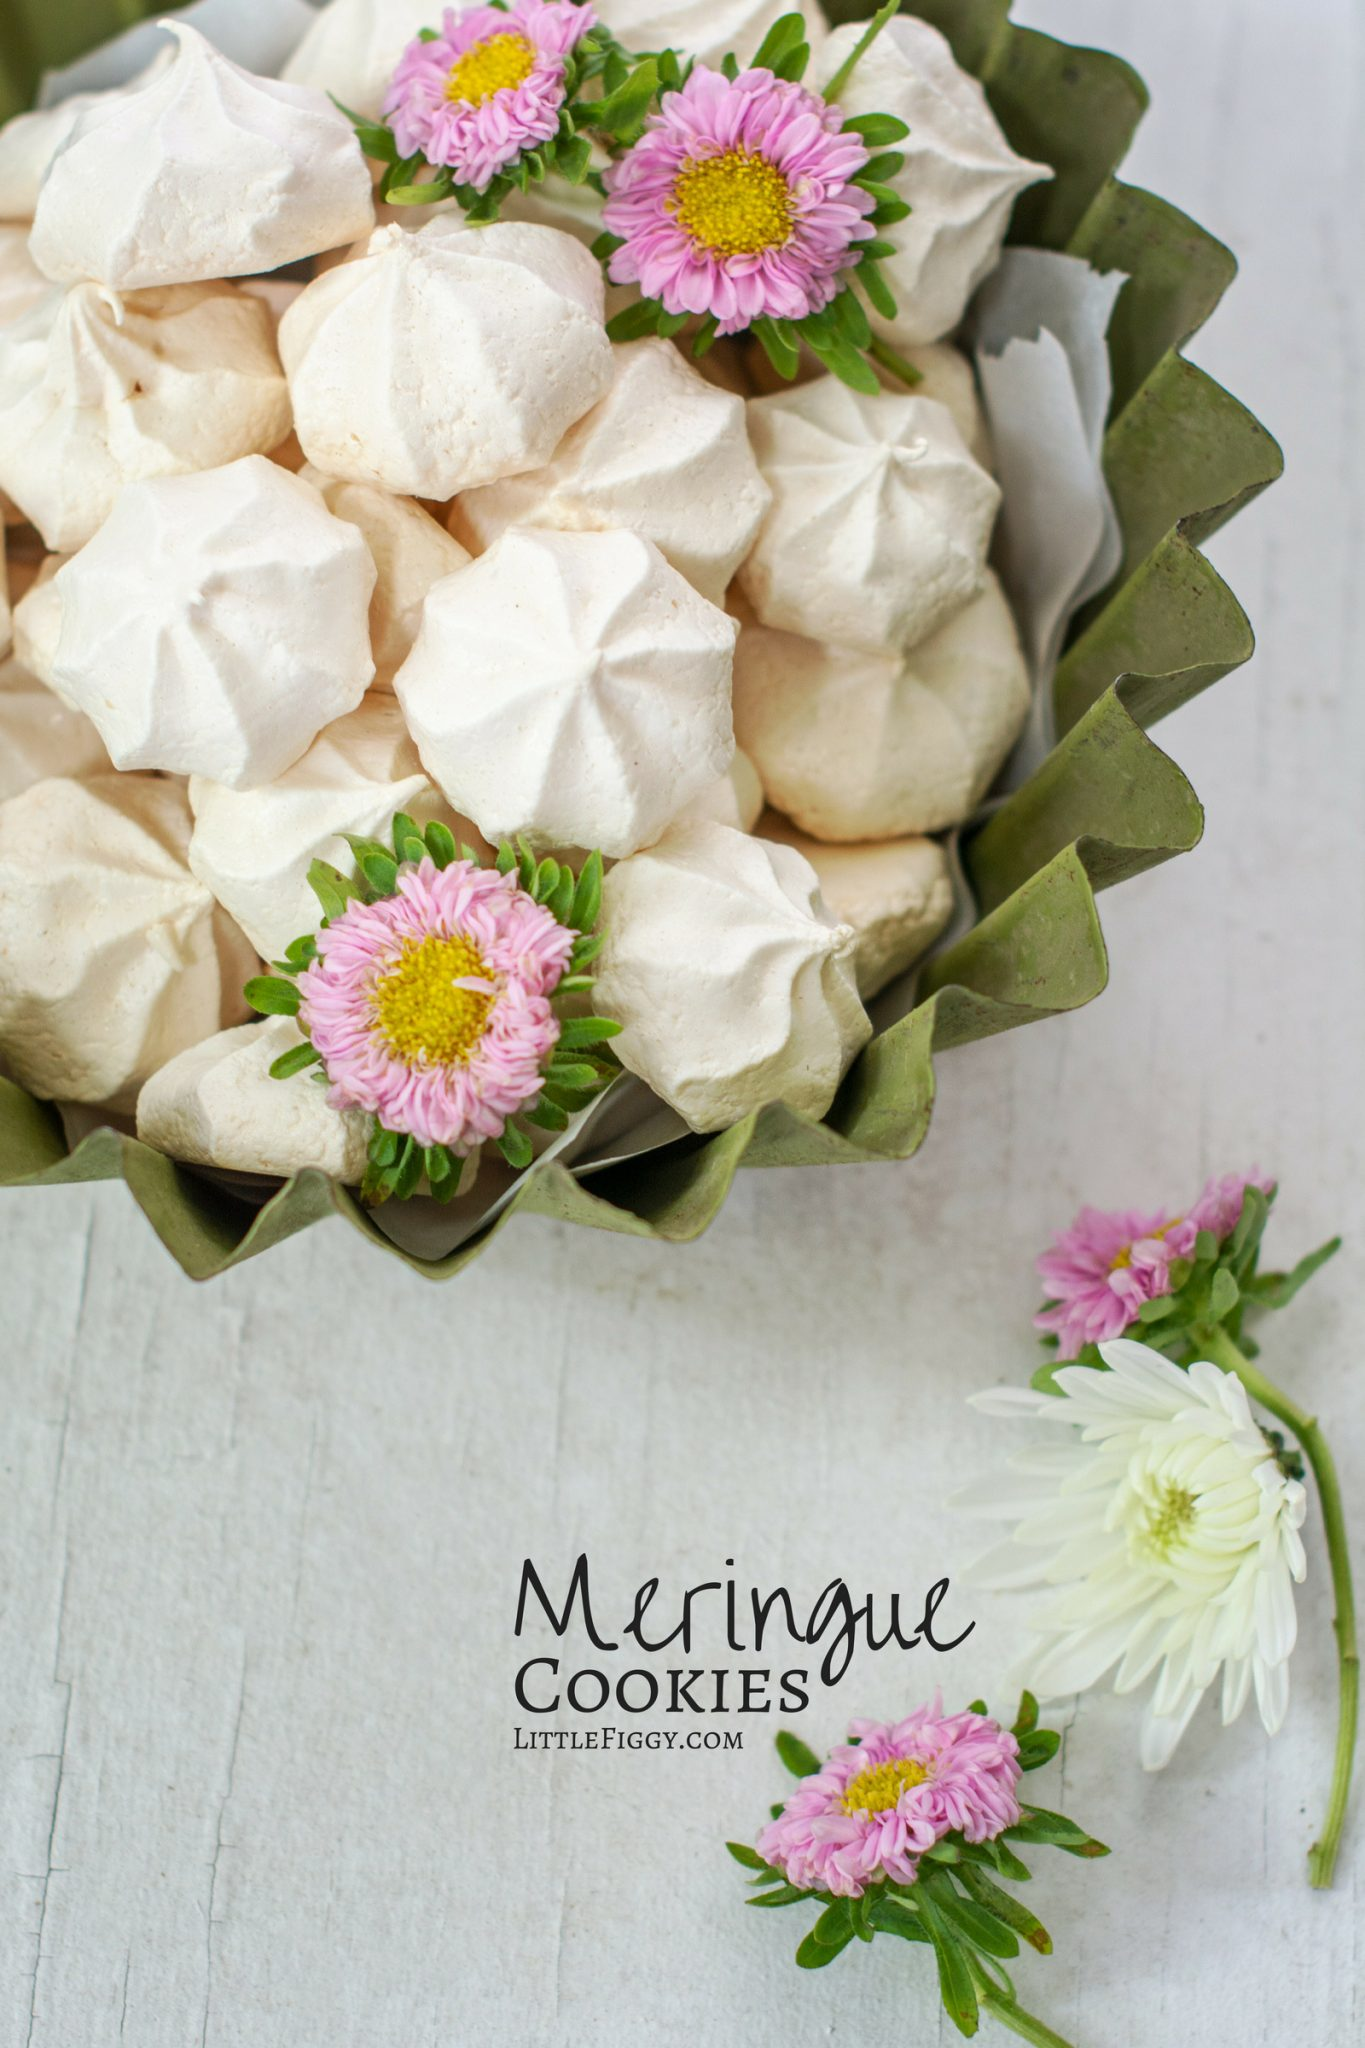 Try making your own Meringue Cookies! Meringues (a.k.a. #meringuekisses) are super easy to make, taste gorgeous on their own or added to ice creams or desserts. All you need is a few ingredients and you're set. #meringue #recipe #baking